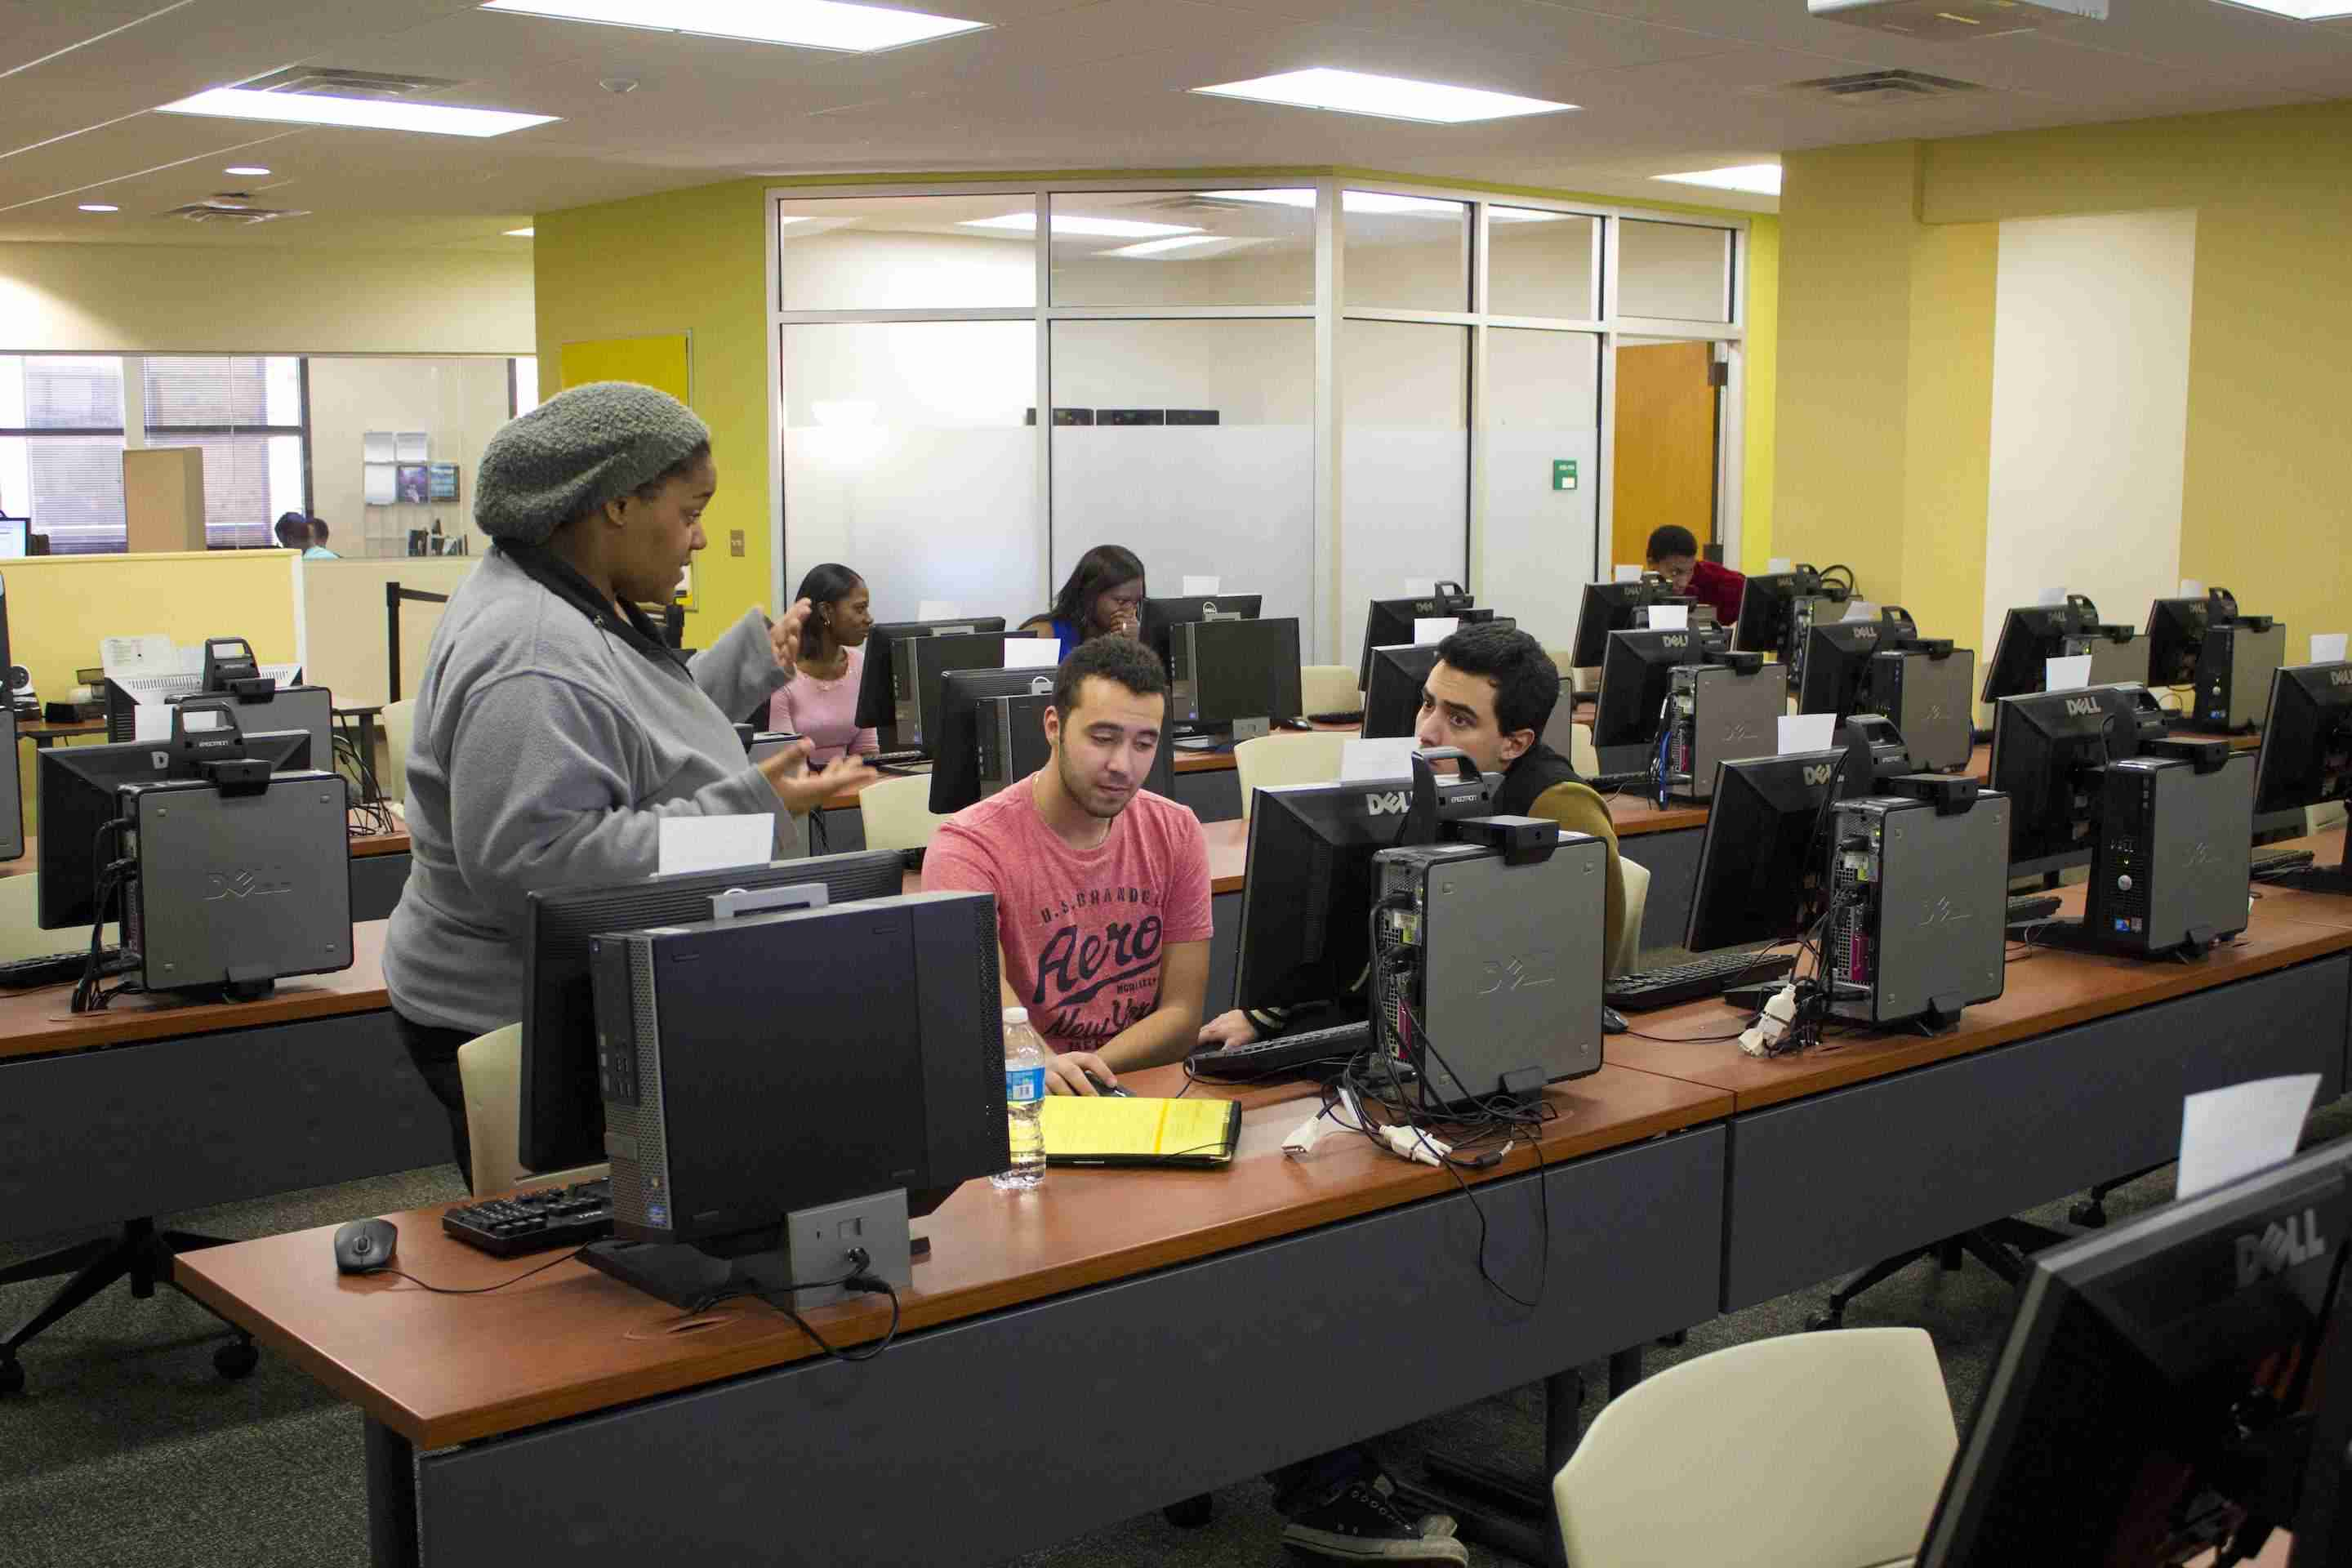 Kierah Johnson (left) helps students in the lab.